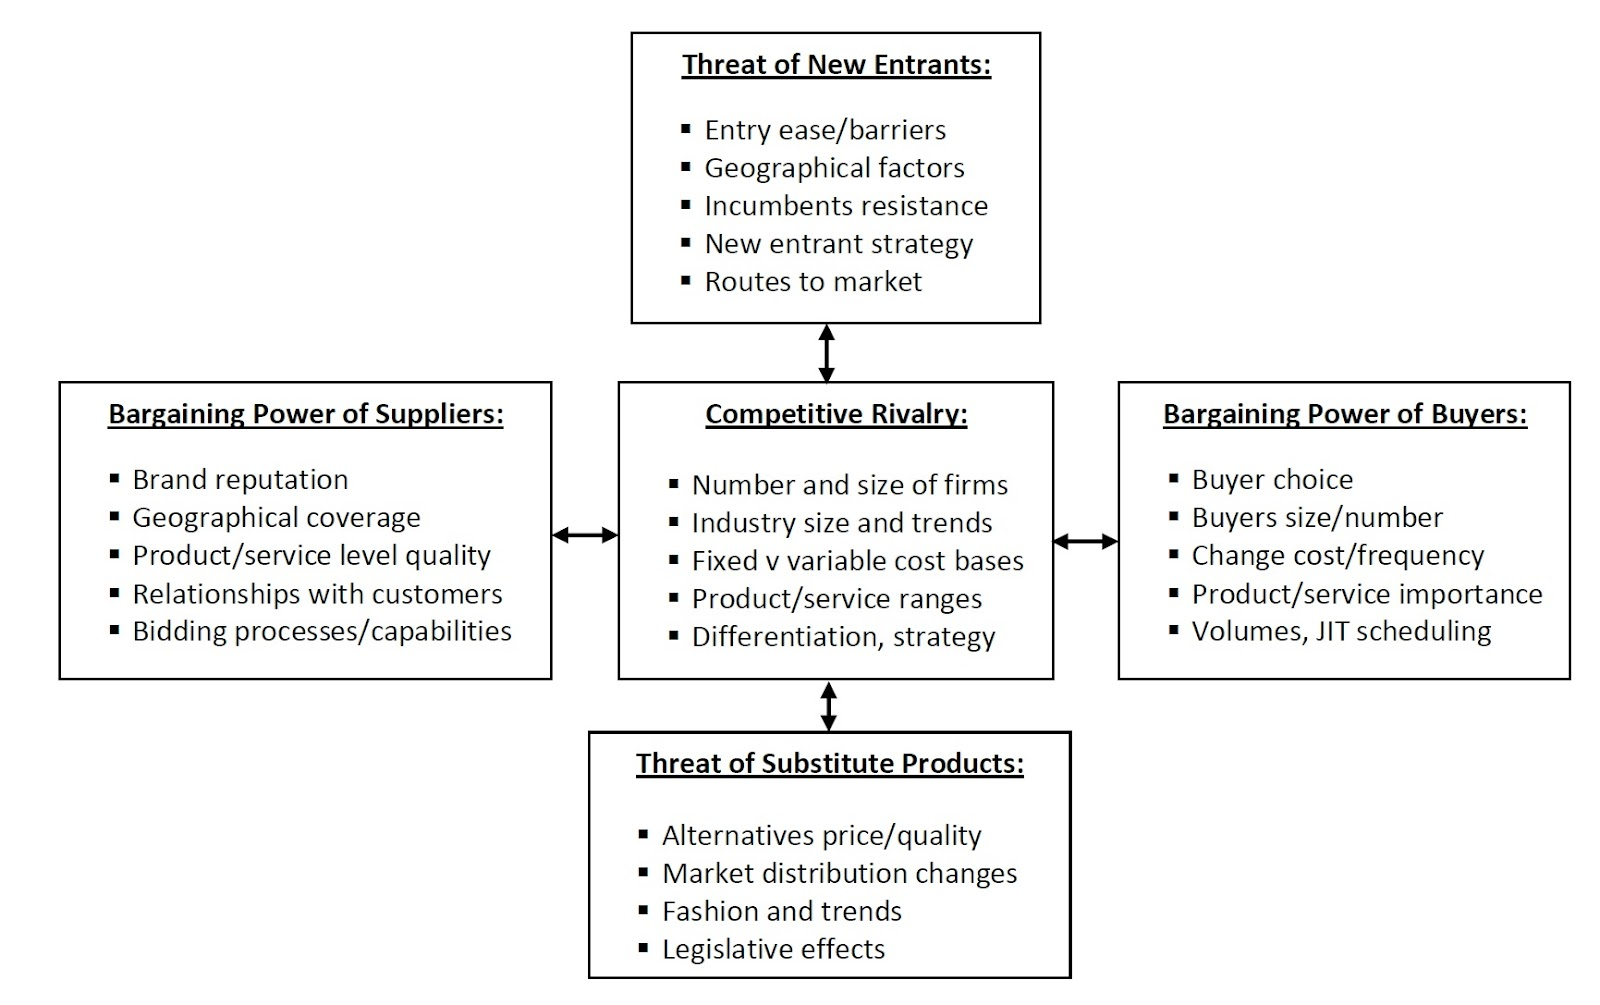 nucor porters 5 forces Strategic management insight works through porter's five forces framework determine the intensity of competition in your industry and its profitability.